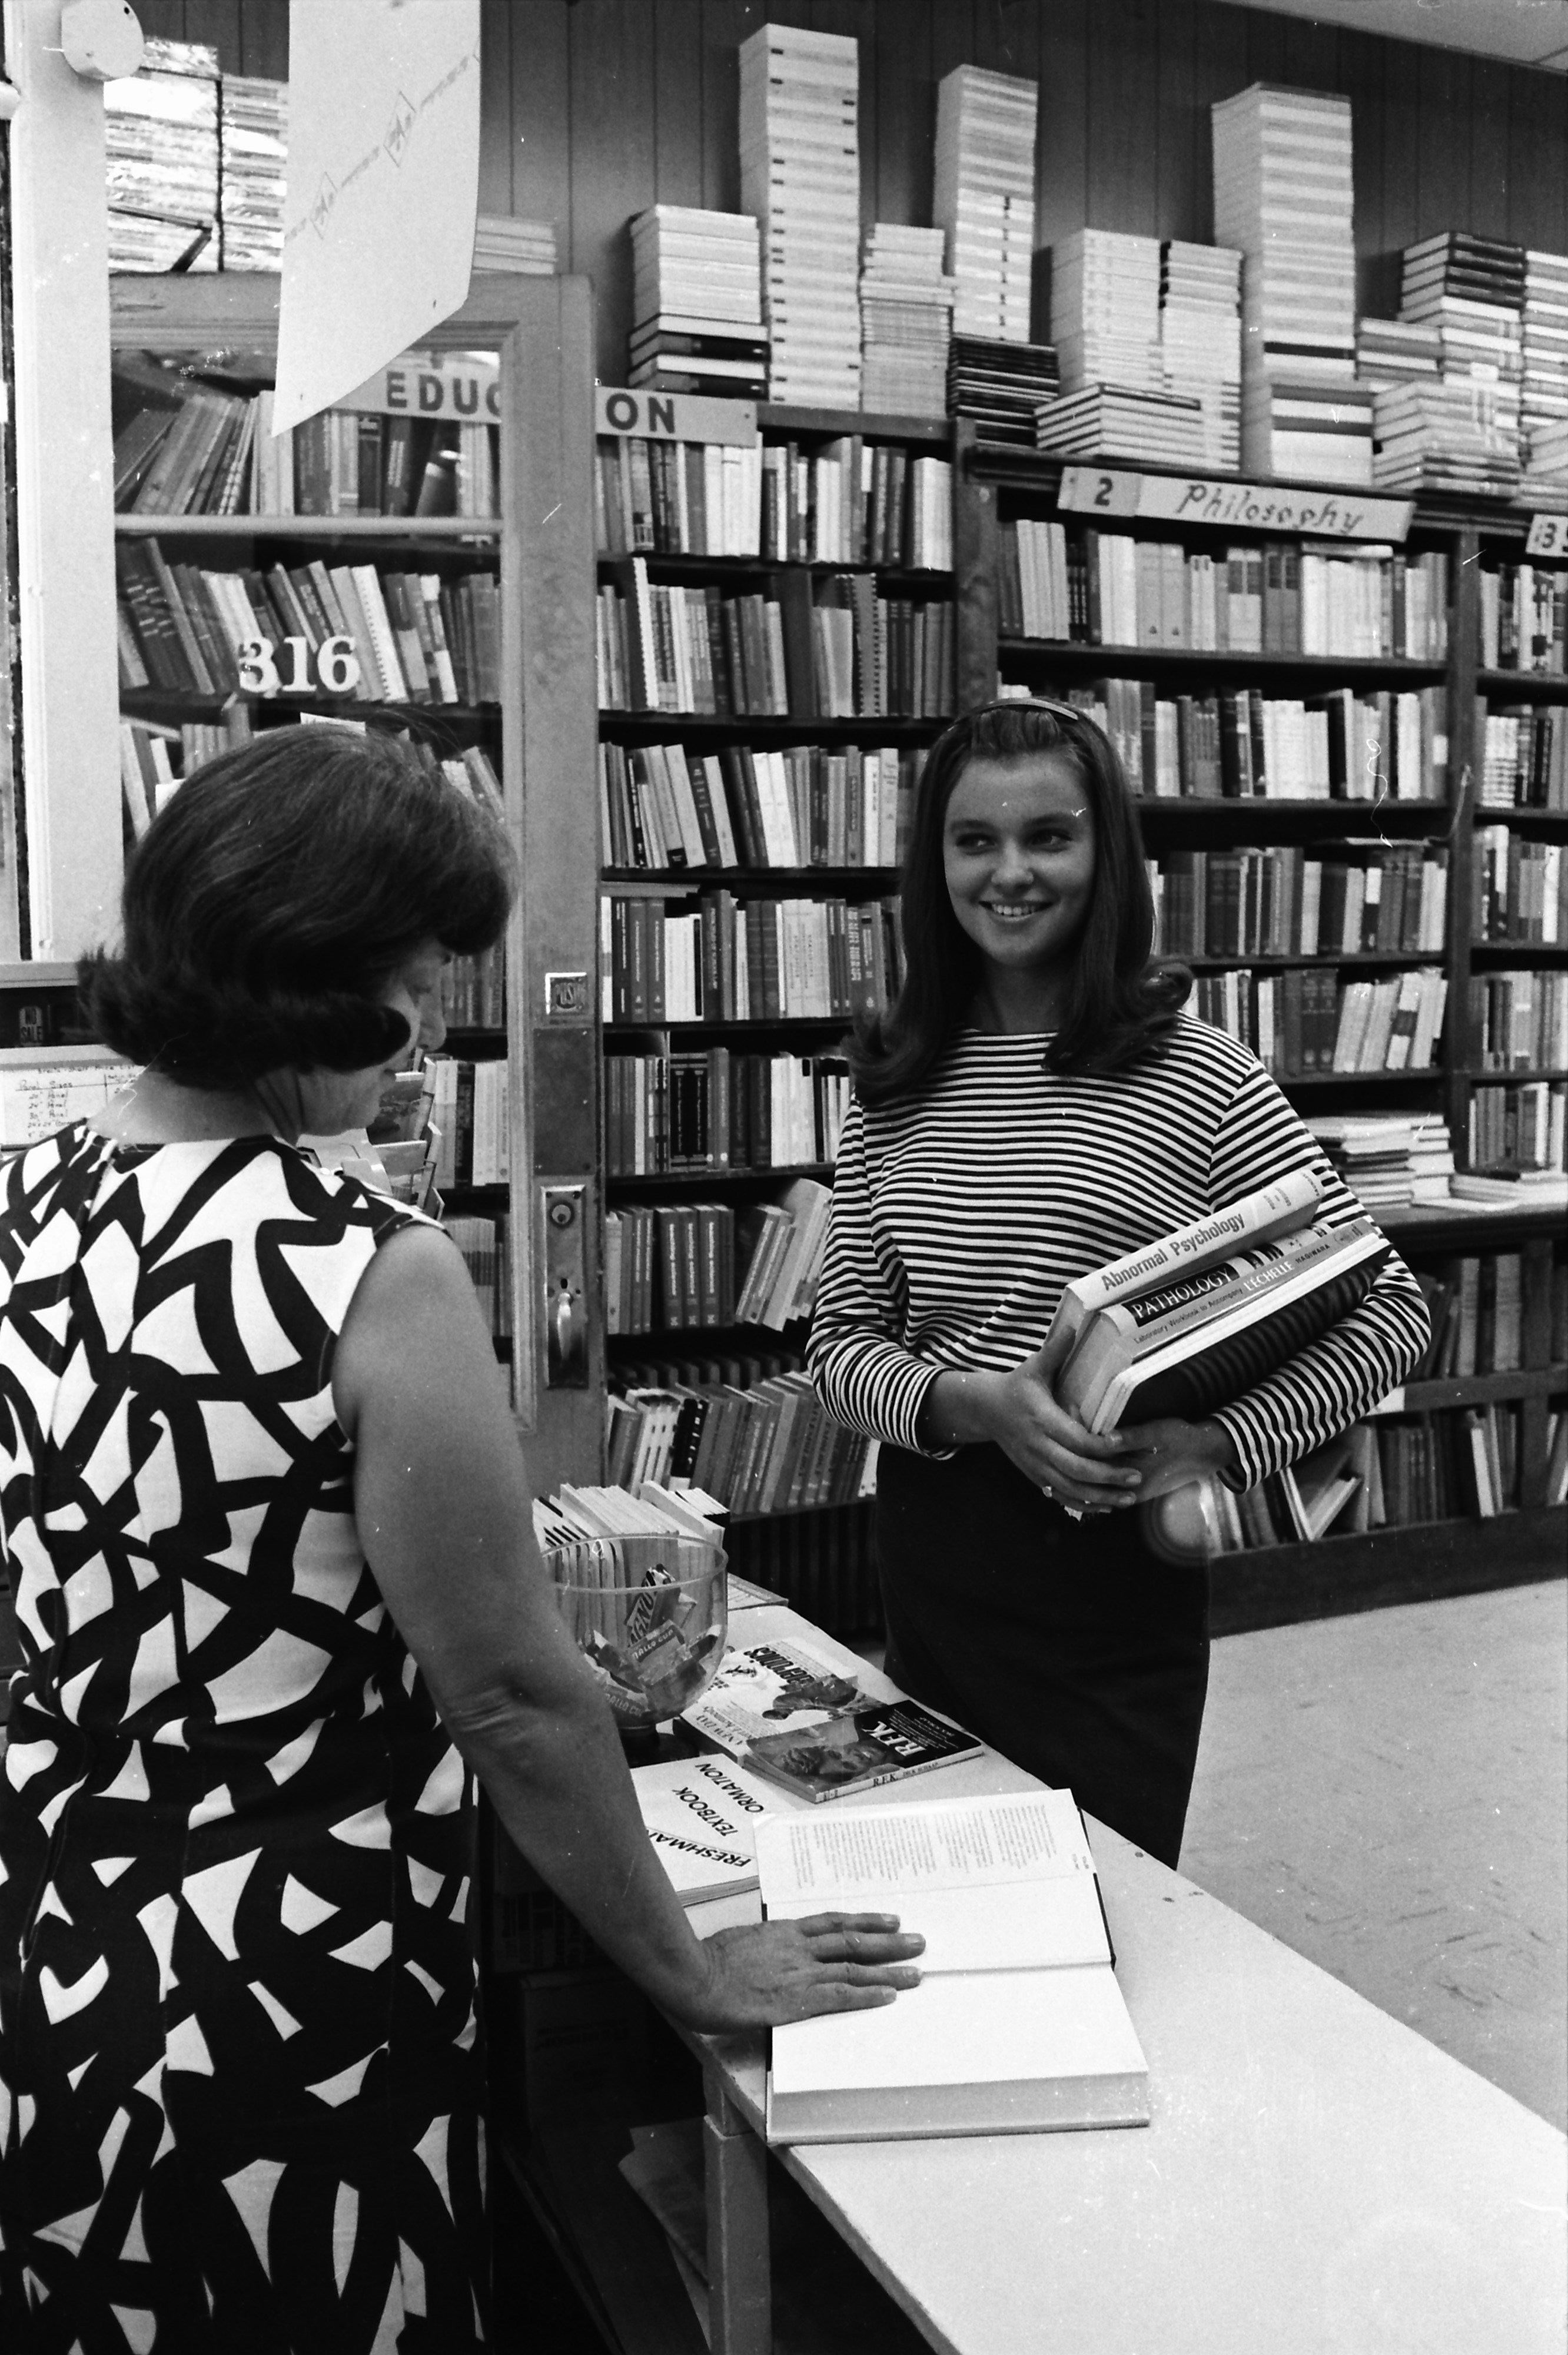 Inside Wahr's Bookstore, July 1968 image